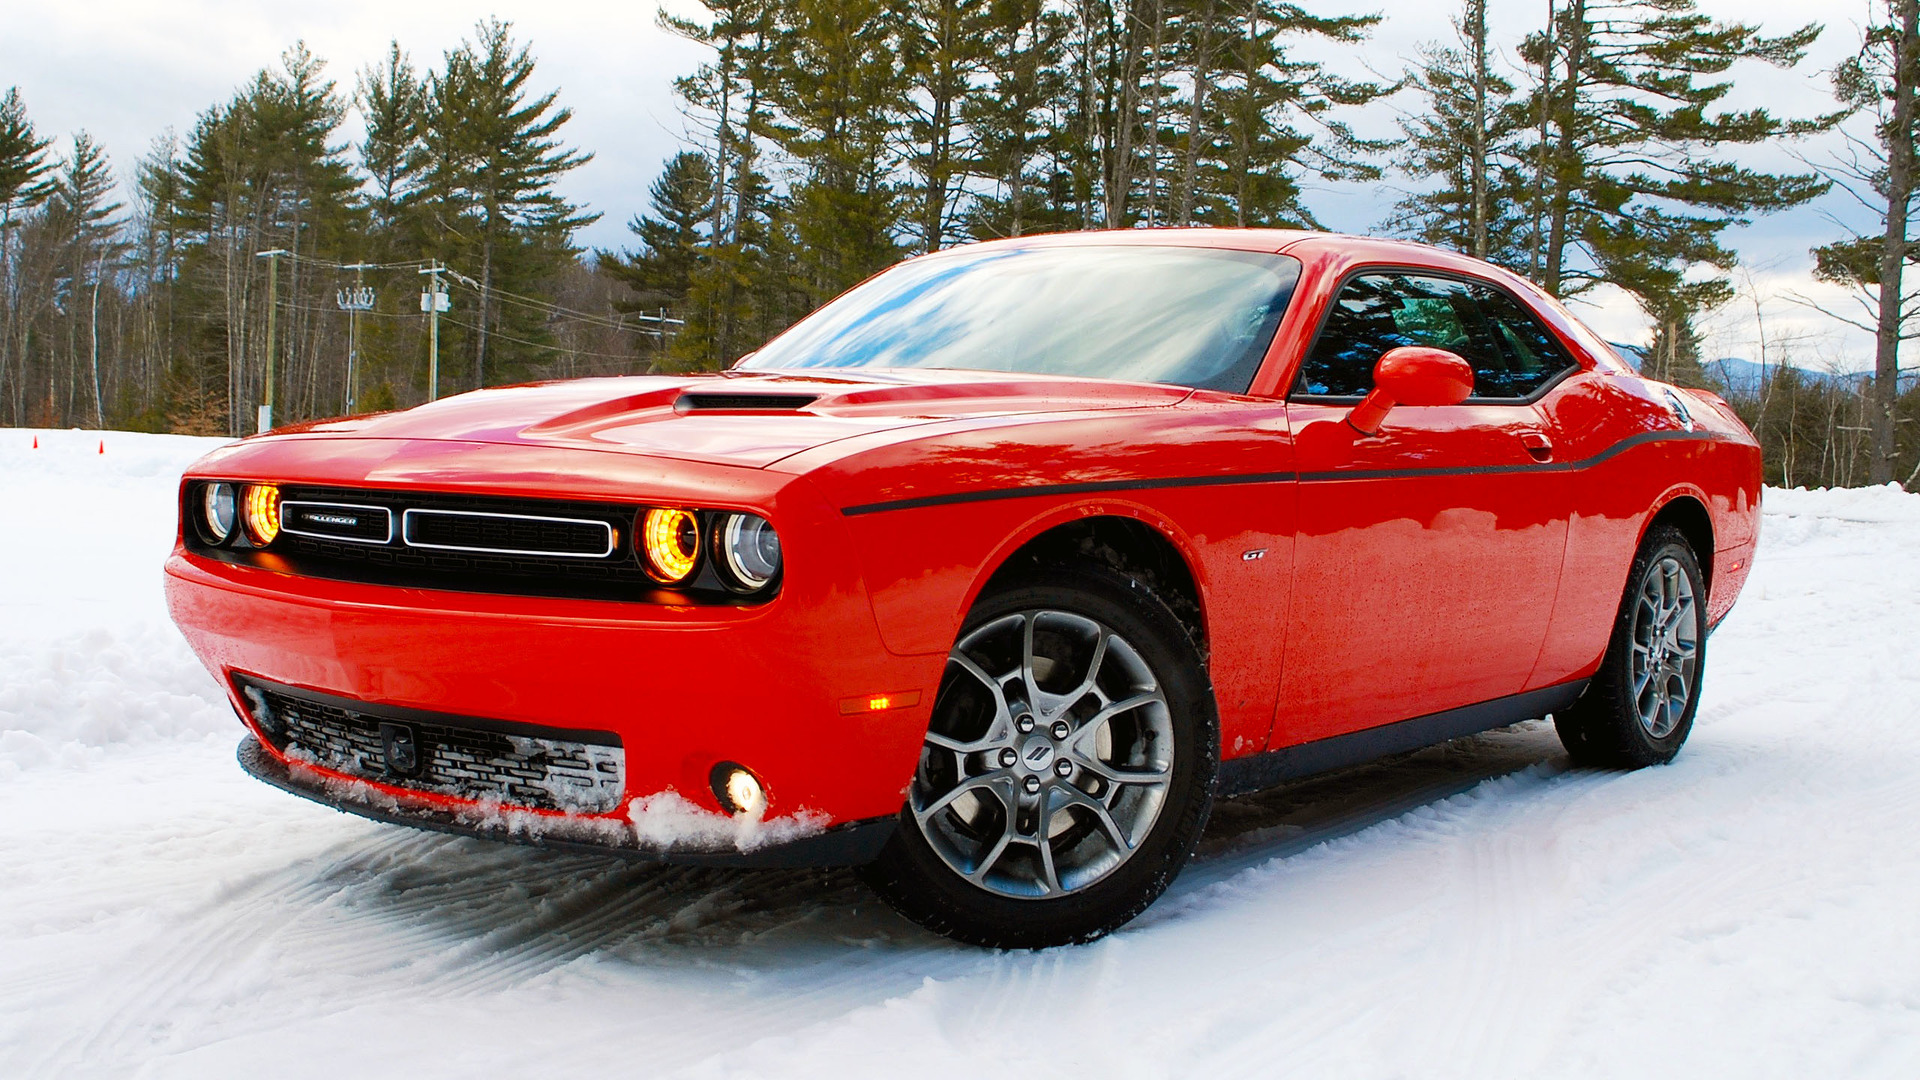 2017 dodge challenger gt first drive don t worry it can still go sideways. Black Bedroom Furniture Sets. Home Design Ideas